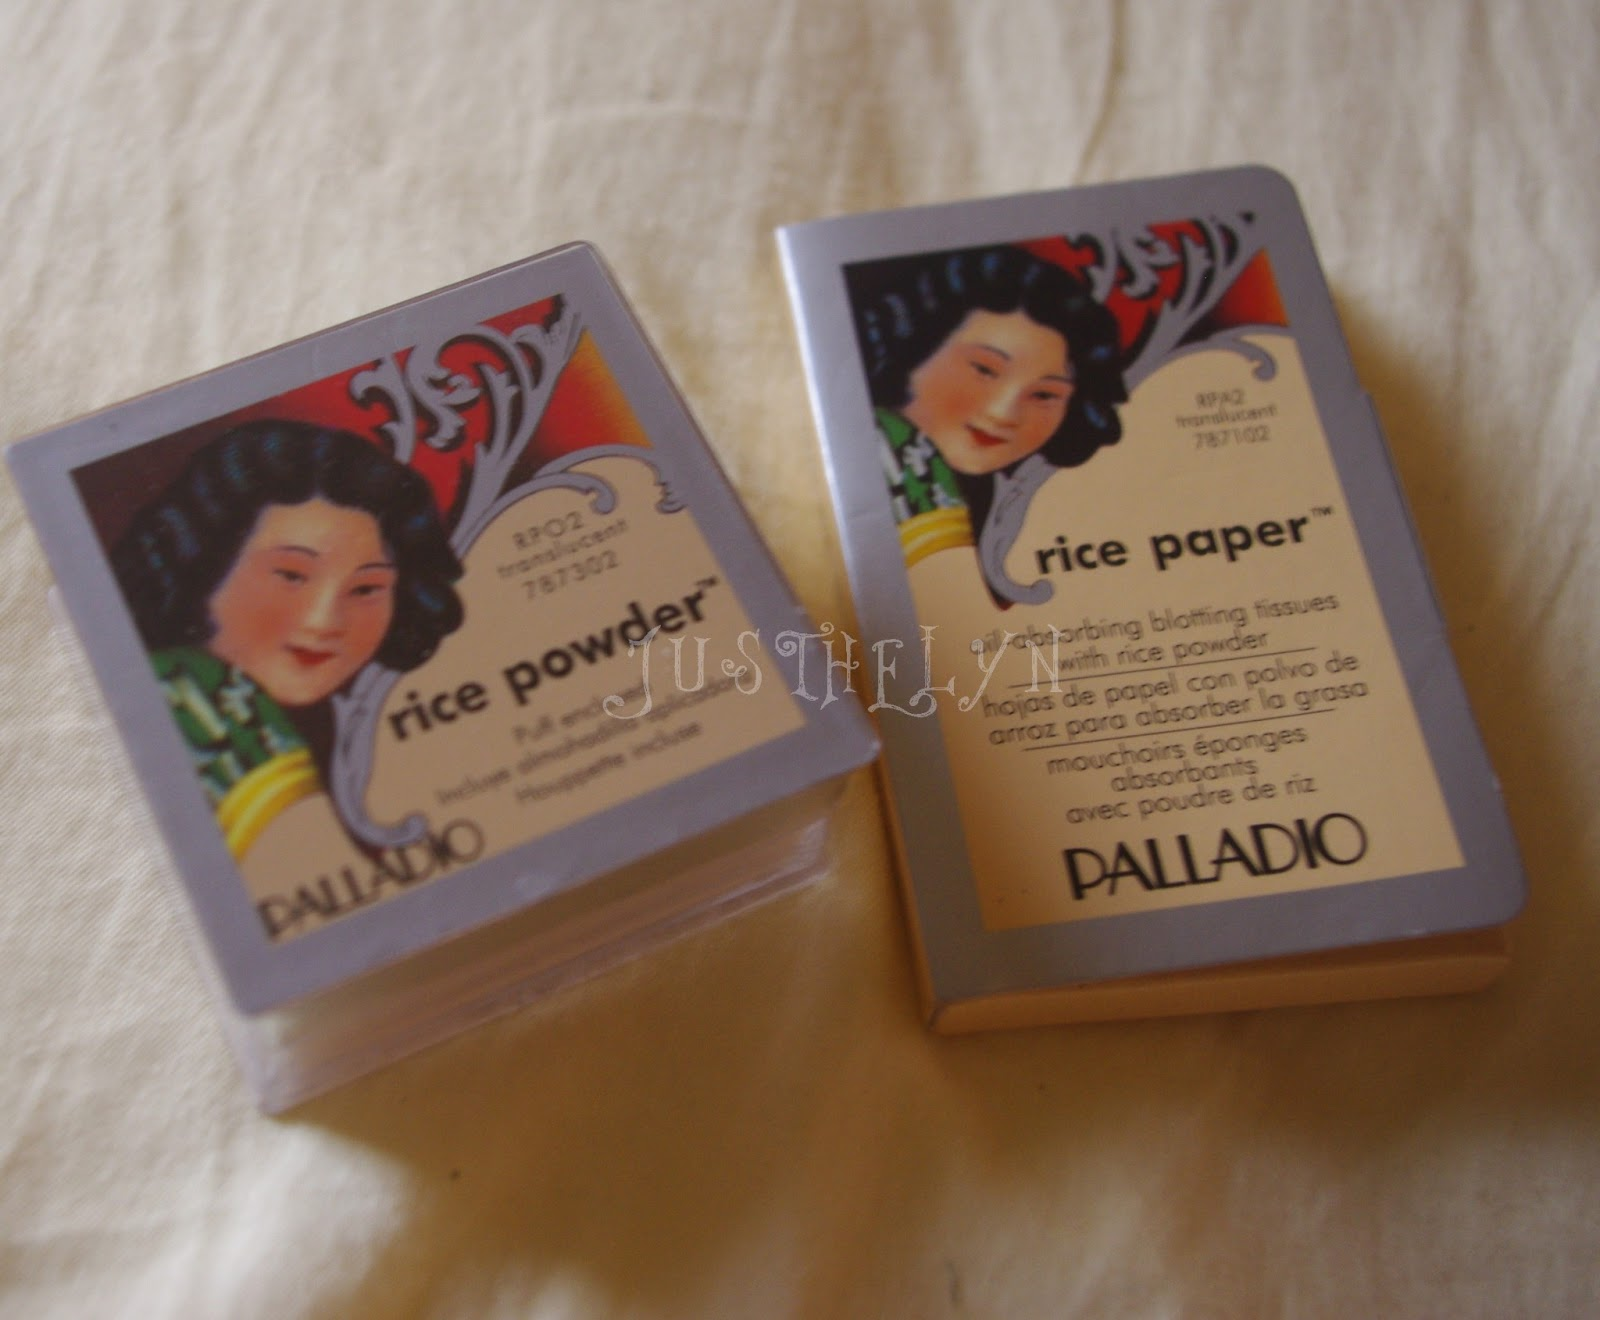 Kittypinky: REVIEW: PALLADIO RICE POWDER-PAPER